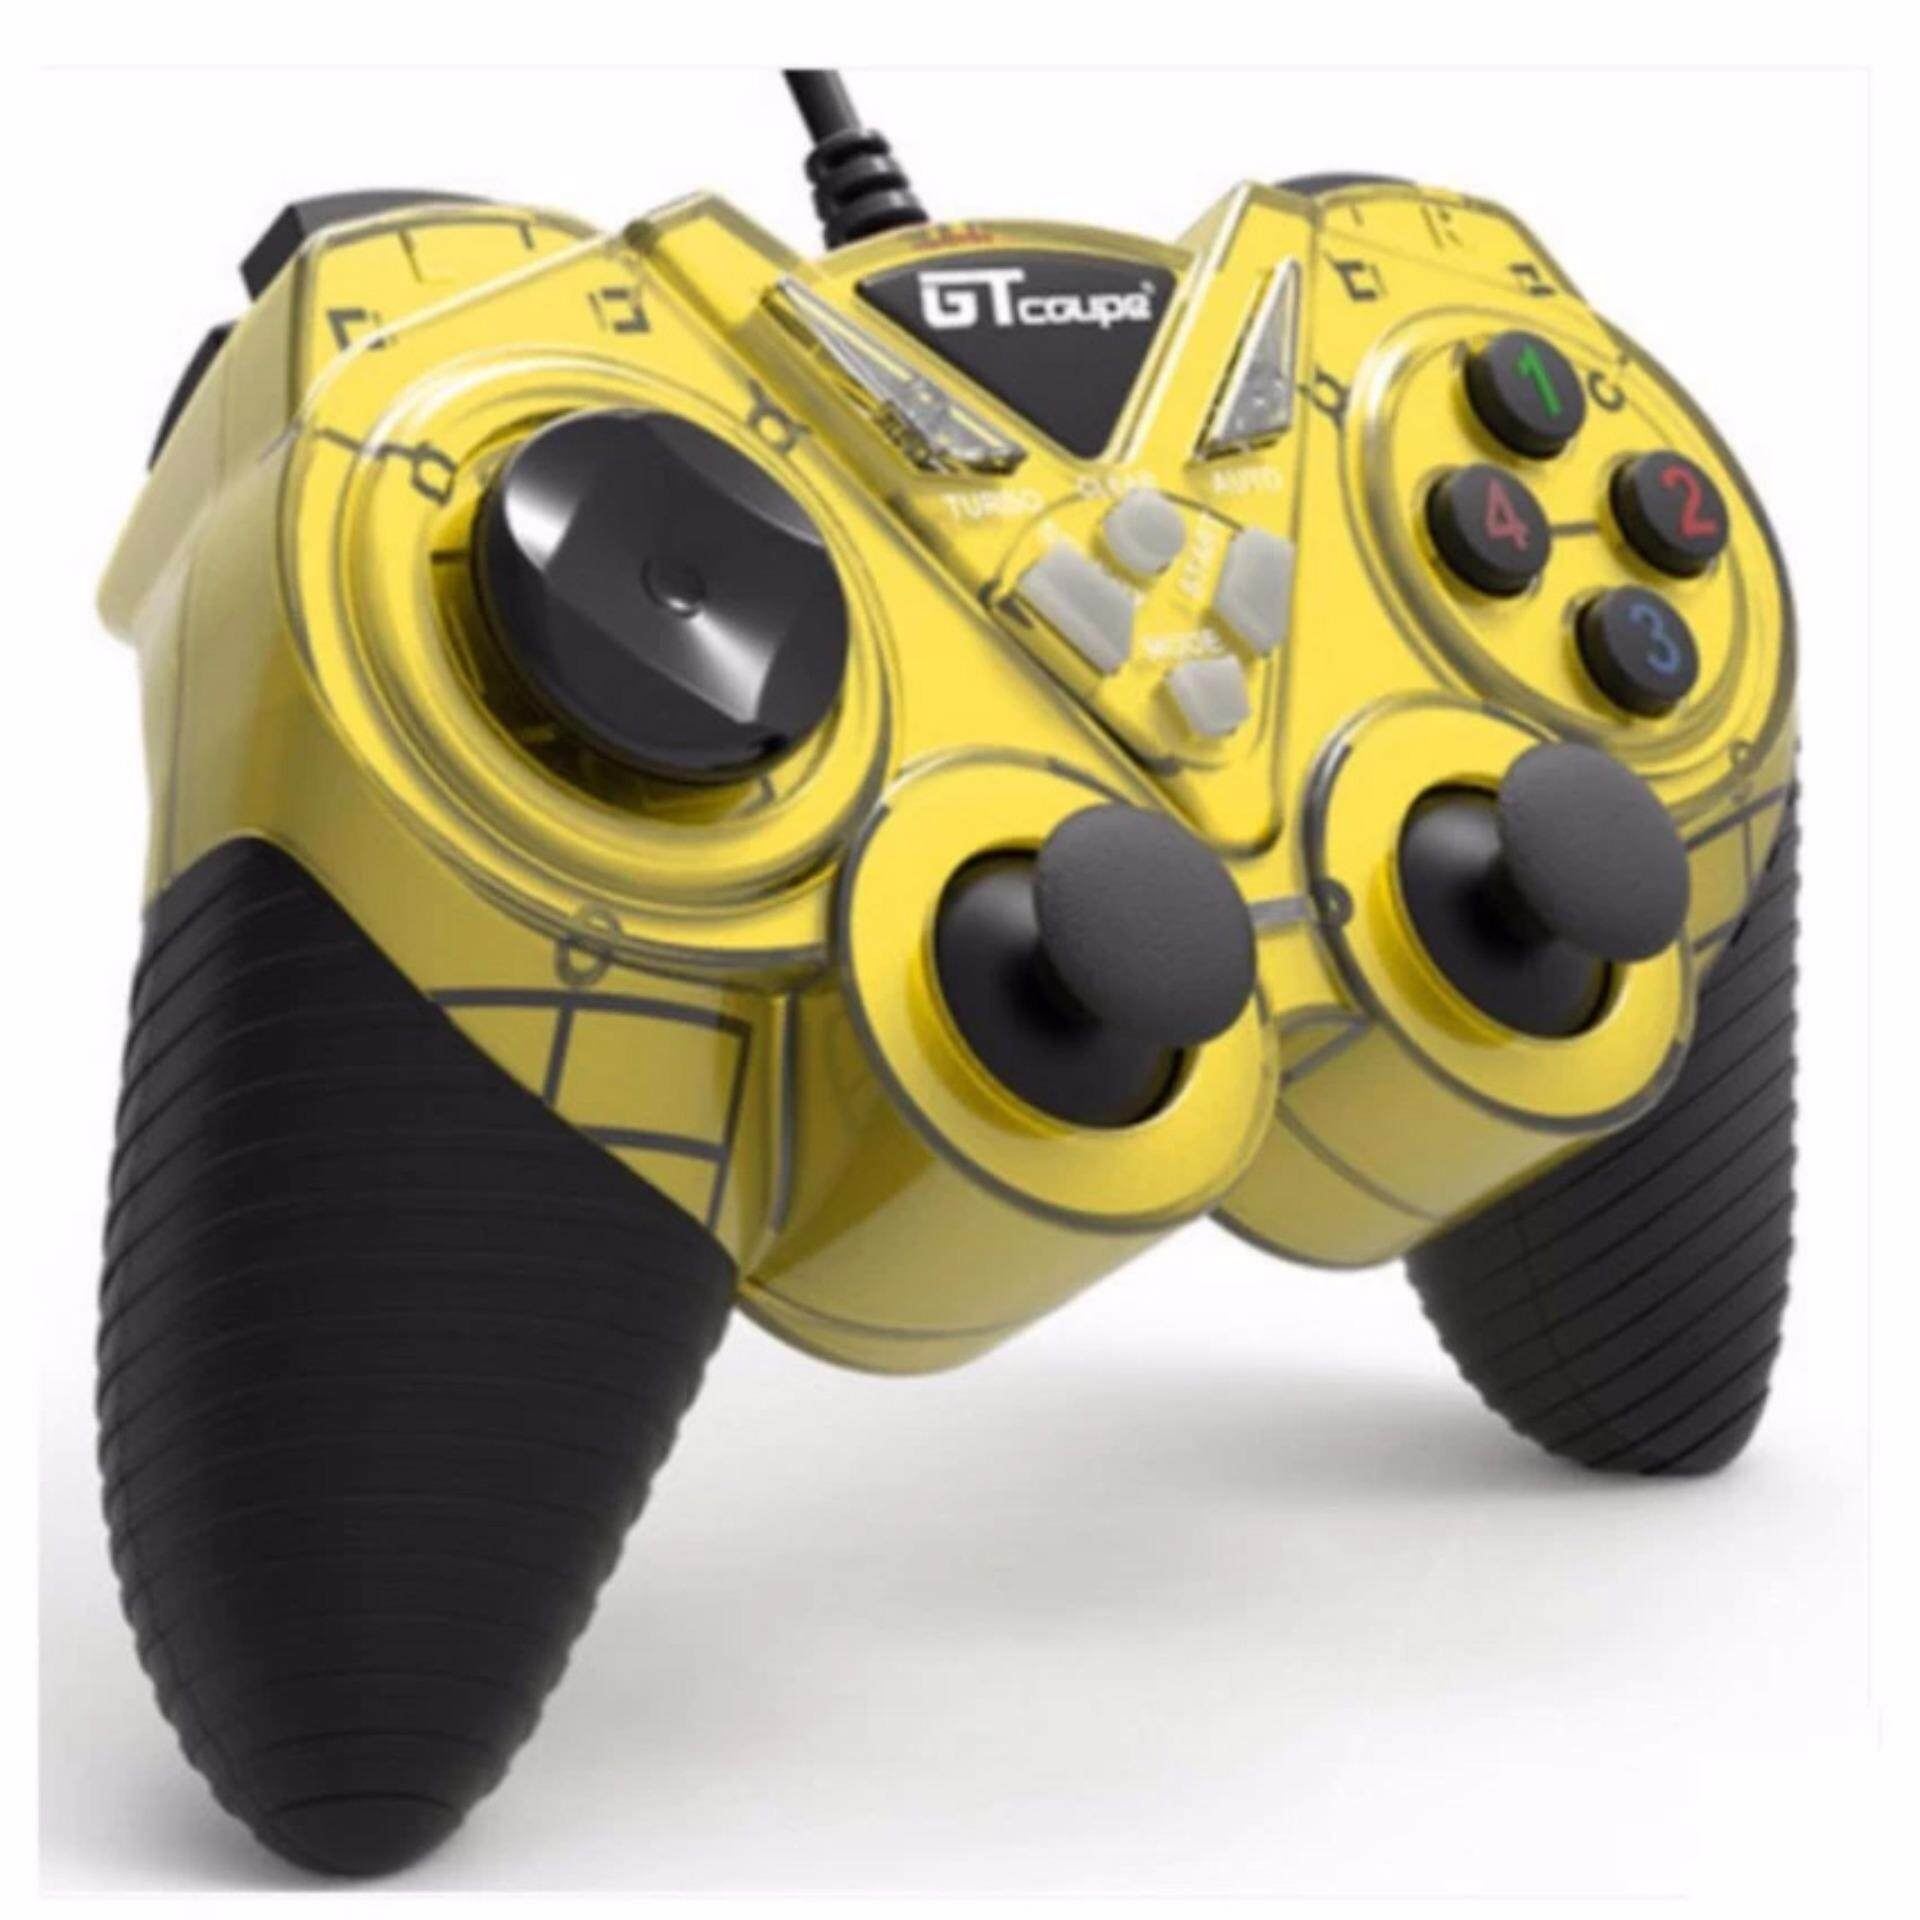 GT Coupe X6 vibrates Shock USB Game Controller with Turbo For PC / Laptop